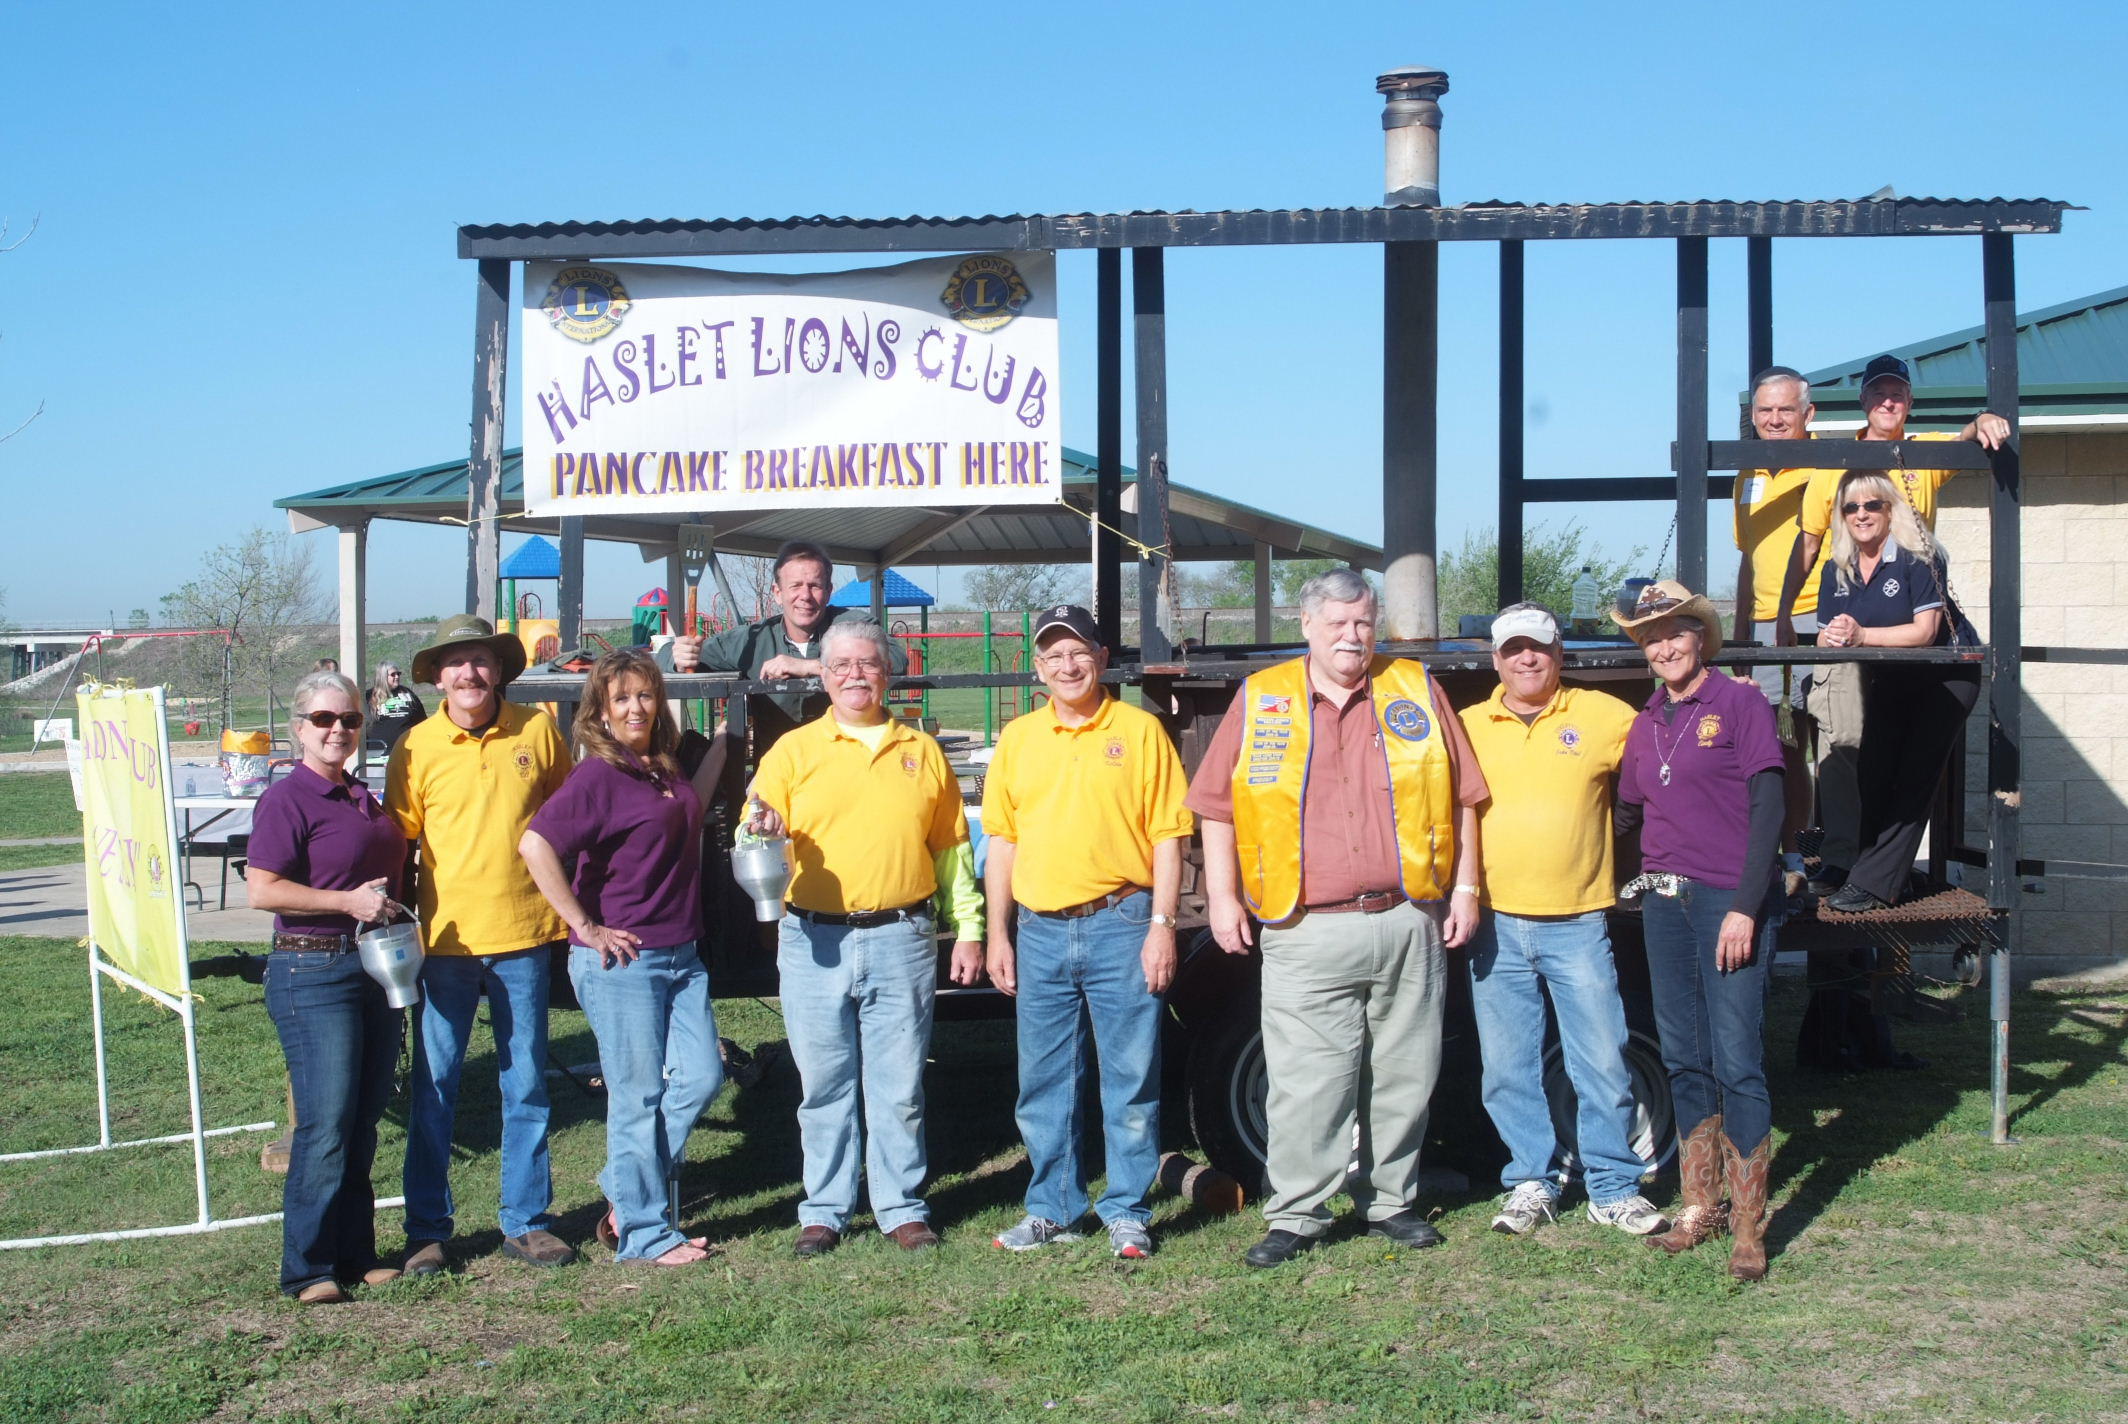 Haslet Lions Club